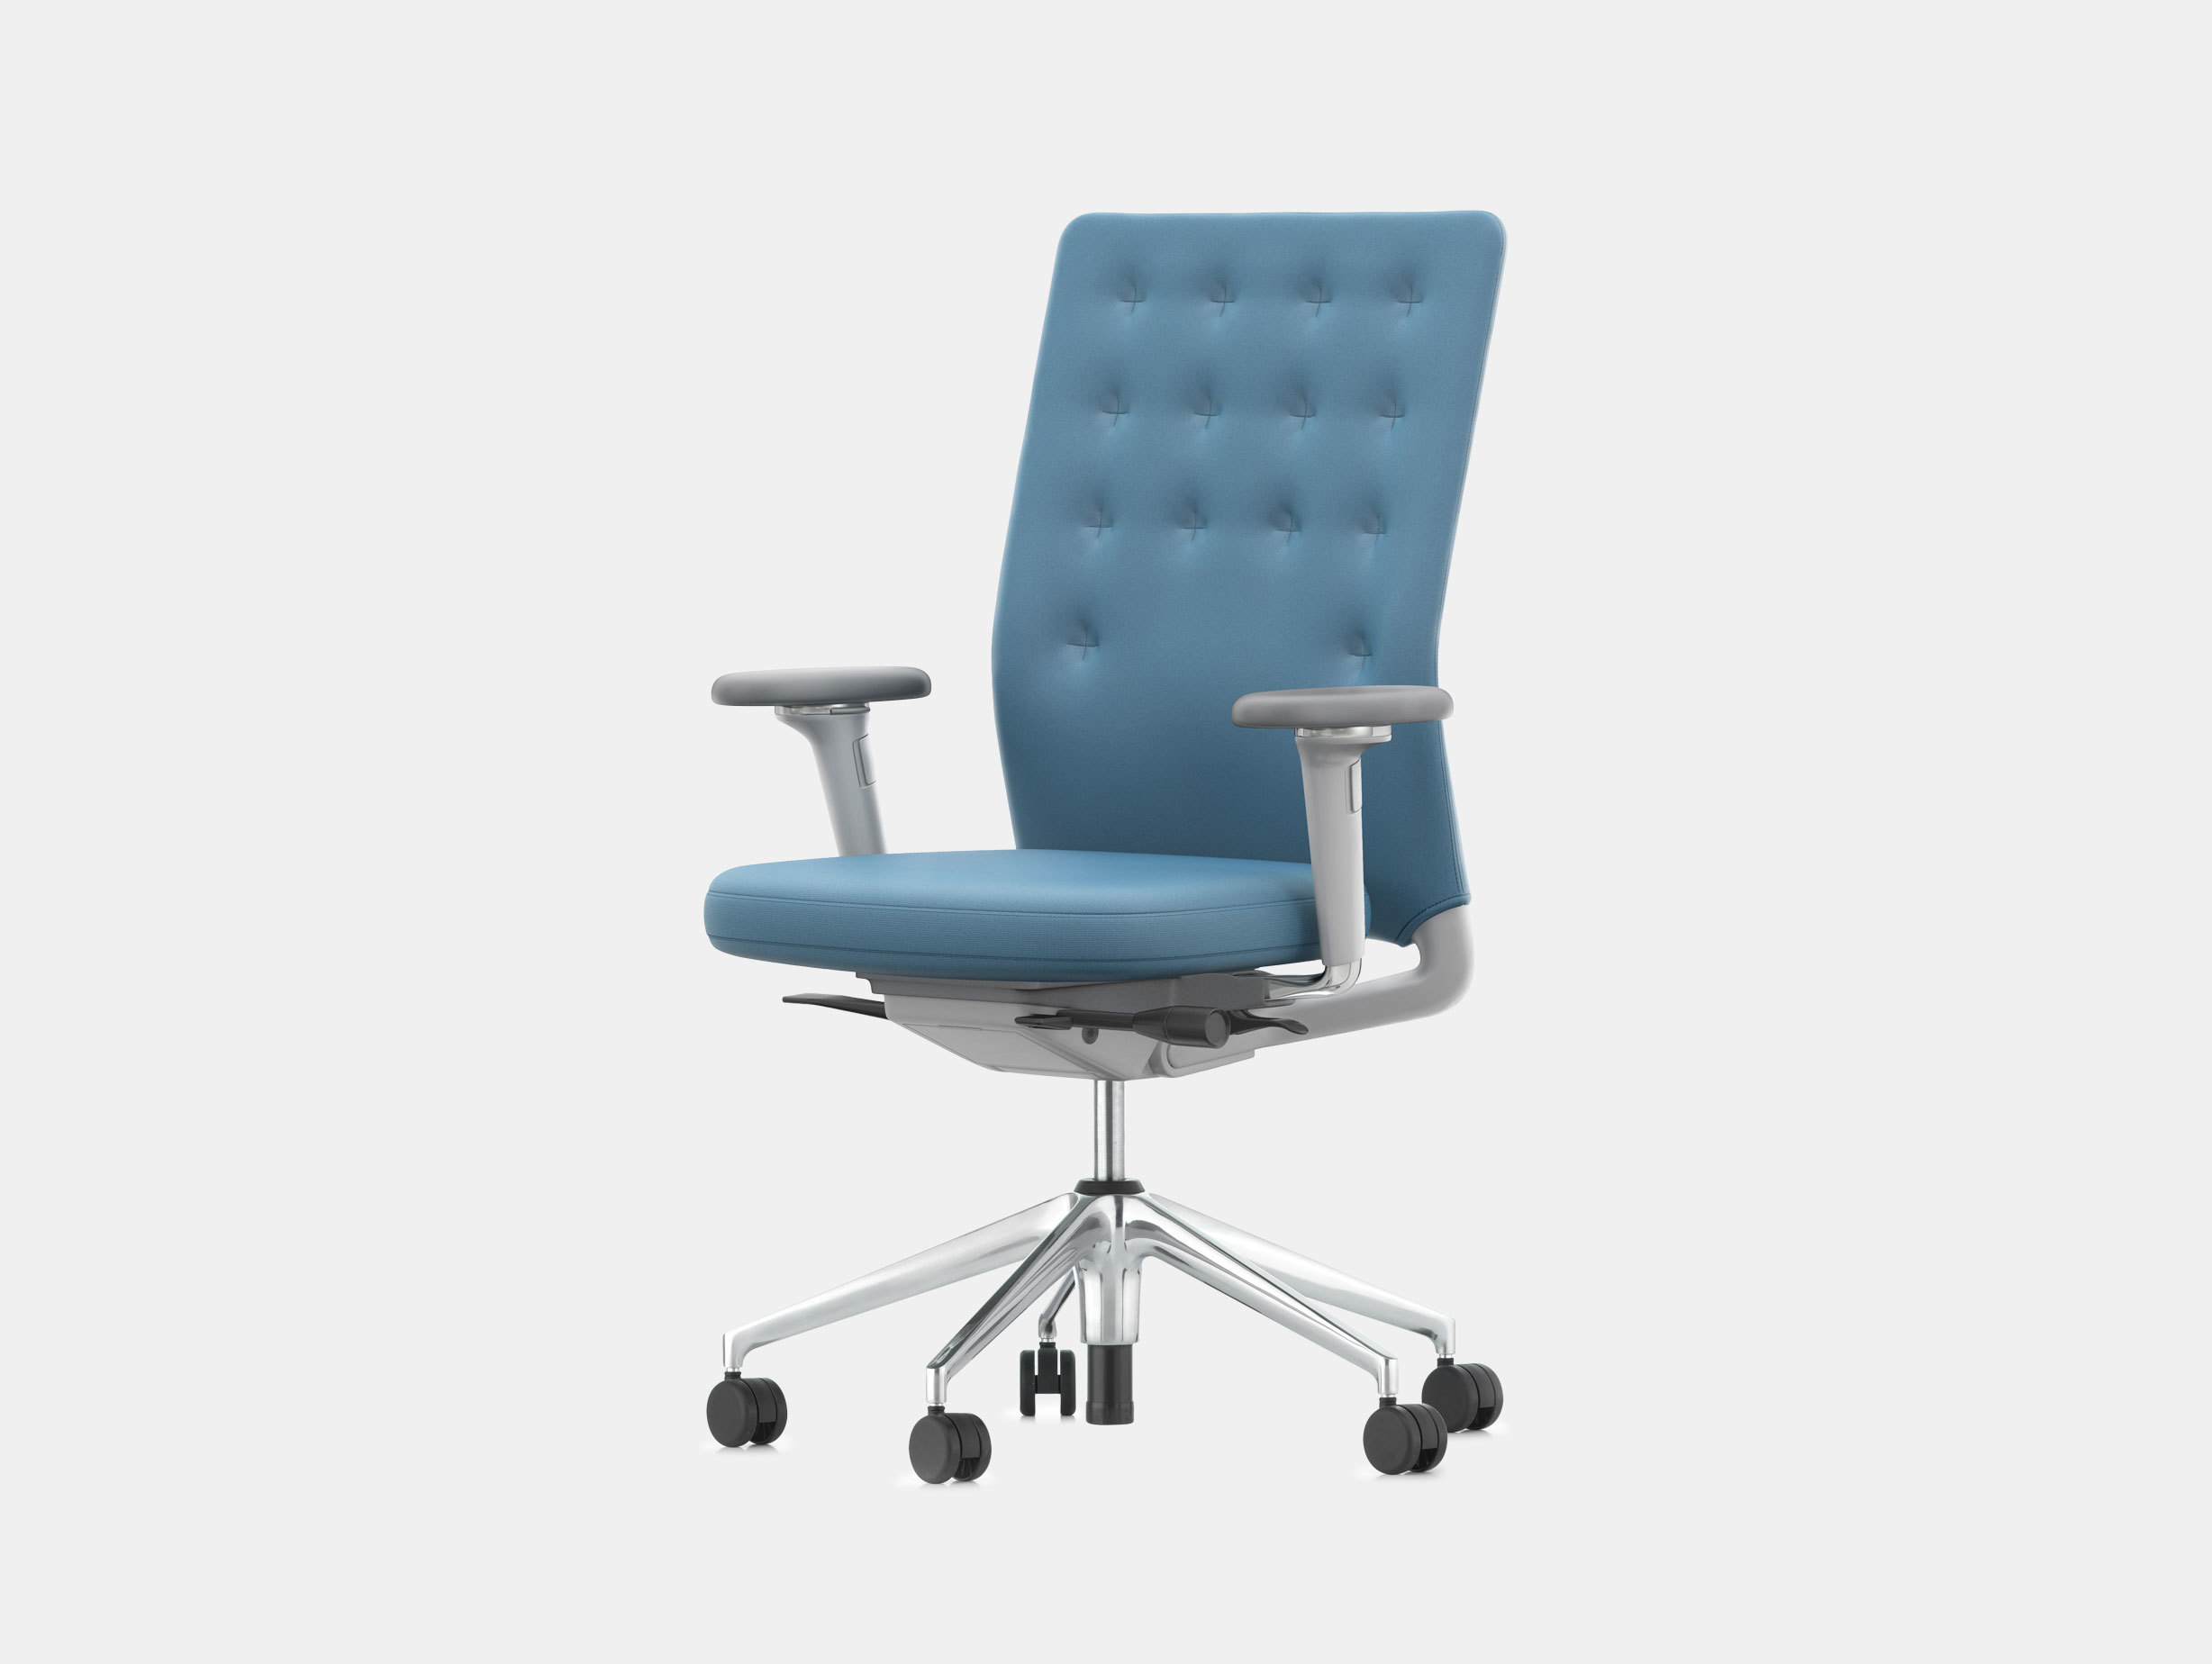 ID Trim Office Chair image 2